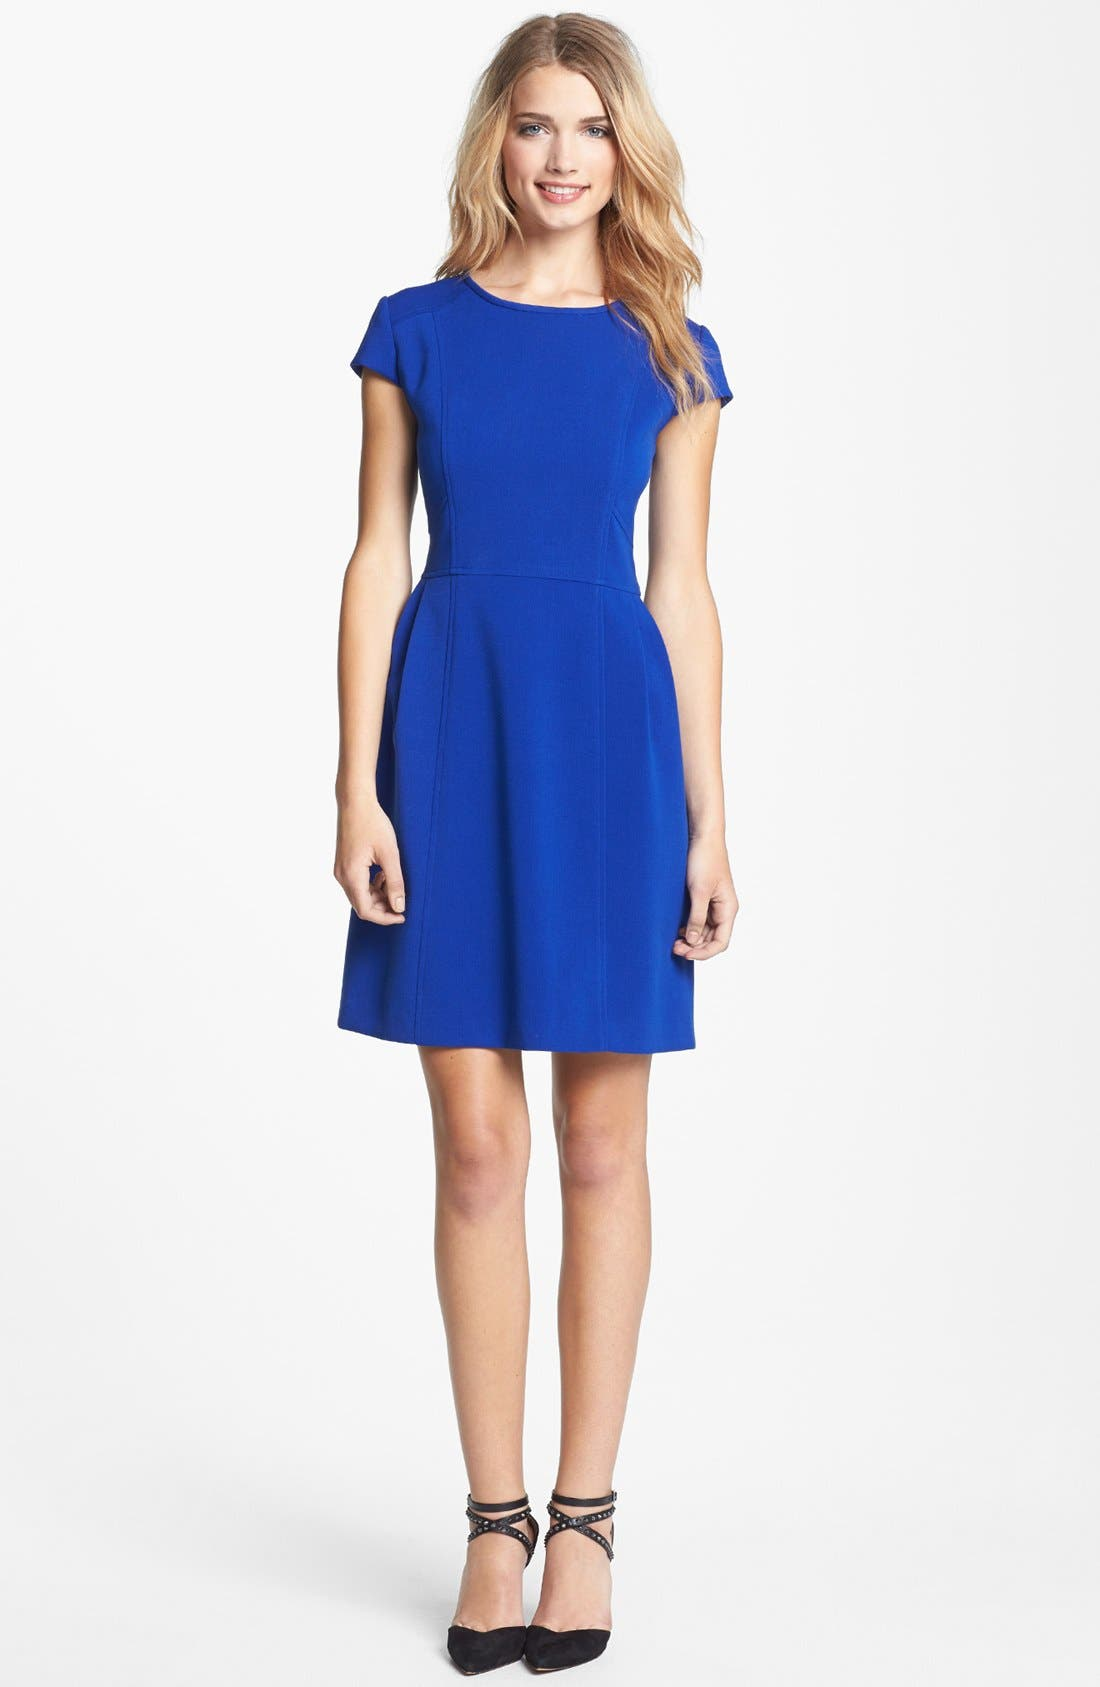 Main Image - Eliza J Seamed Double Knit Crepe Fit & Flare Dress (Regular & Petite)